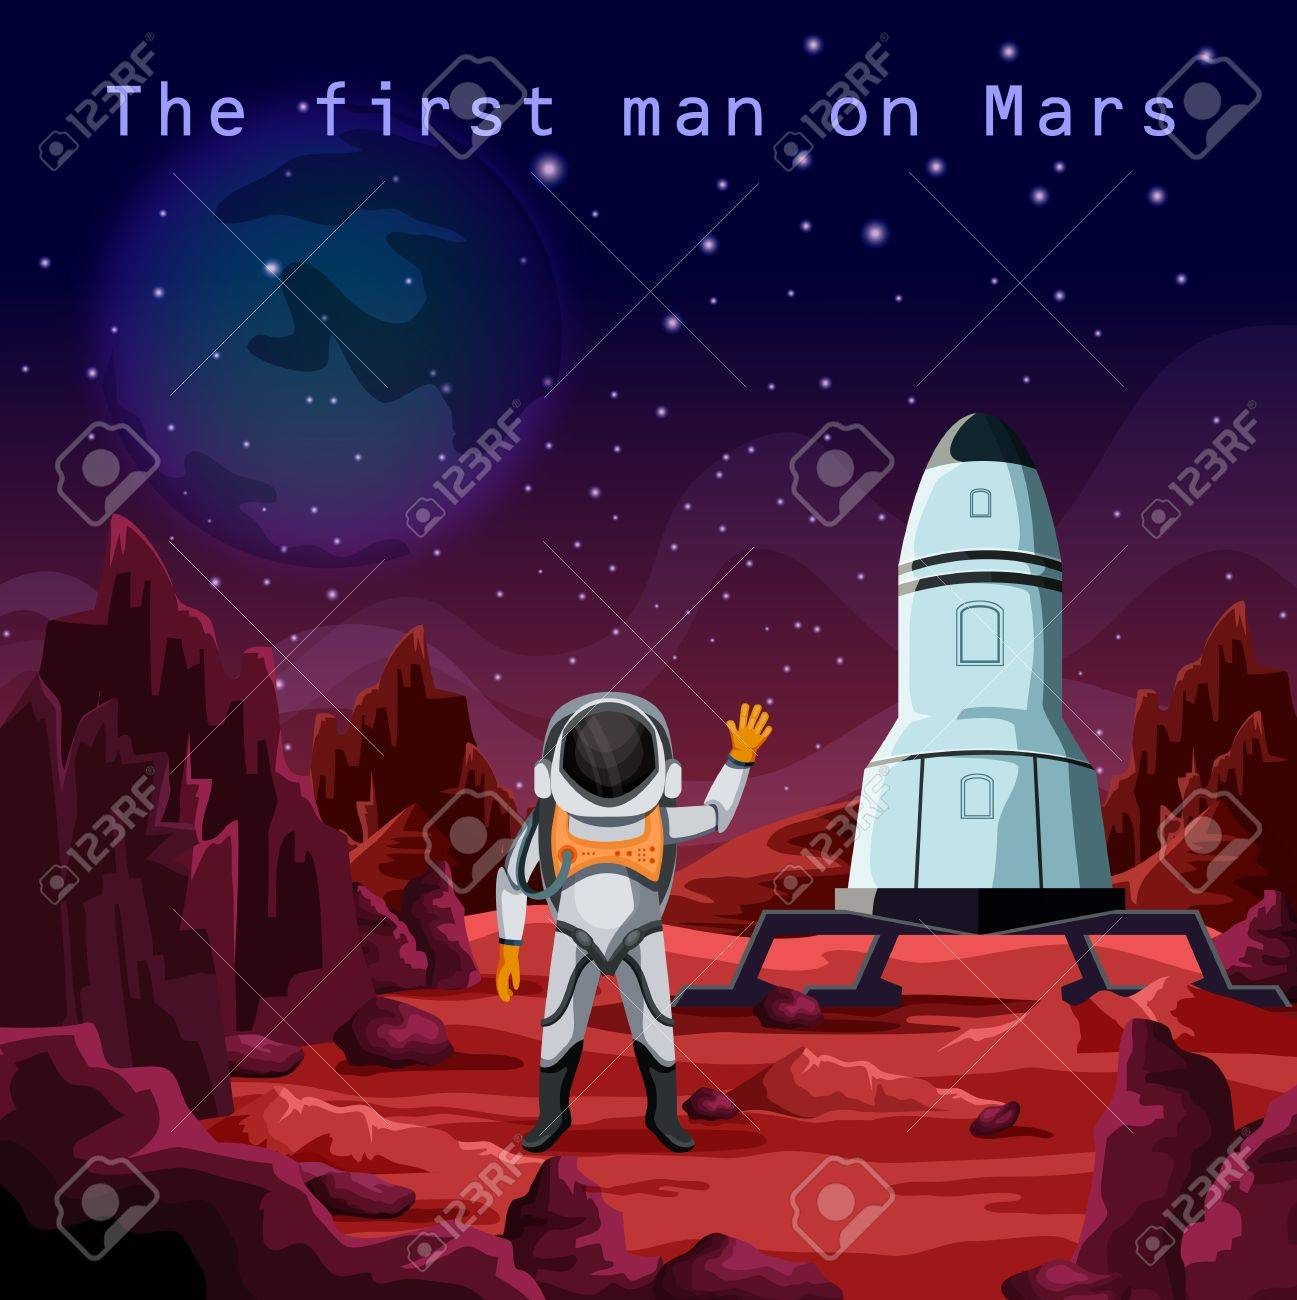 An Astronaut in spacesuit or first man on red planet mars. Human cosmonaut near rocket or spaceship. Cosmos and space exploration and colonization, future mission and science, galaxy theme. - 79241083